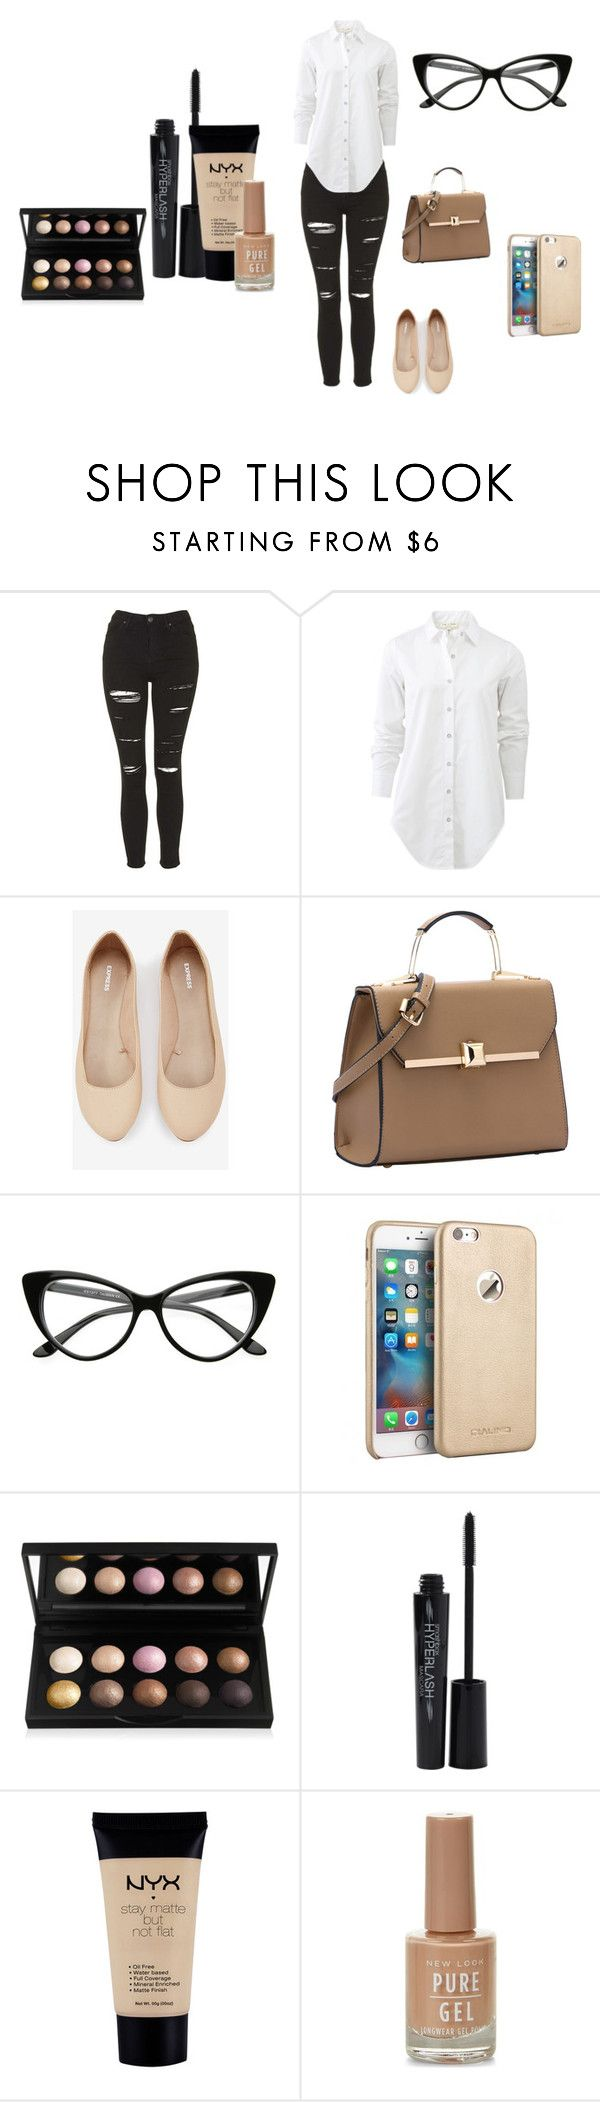 """""""Cute look"""" by daniellepearce13 on Polyvore featuring Topshop, rag & bone, Express, Smashbox, NYX, women's clothing, women's fashion, women, female and woman"""